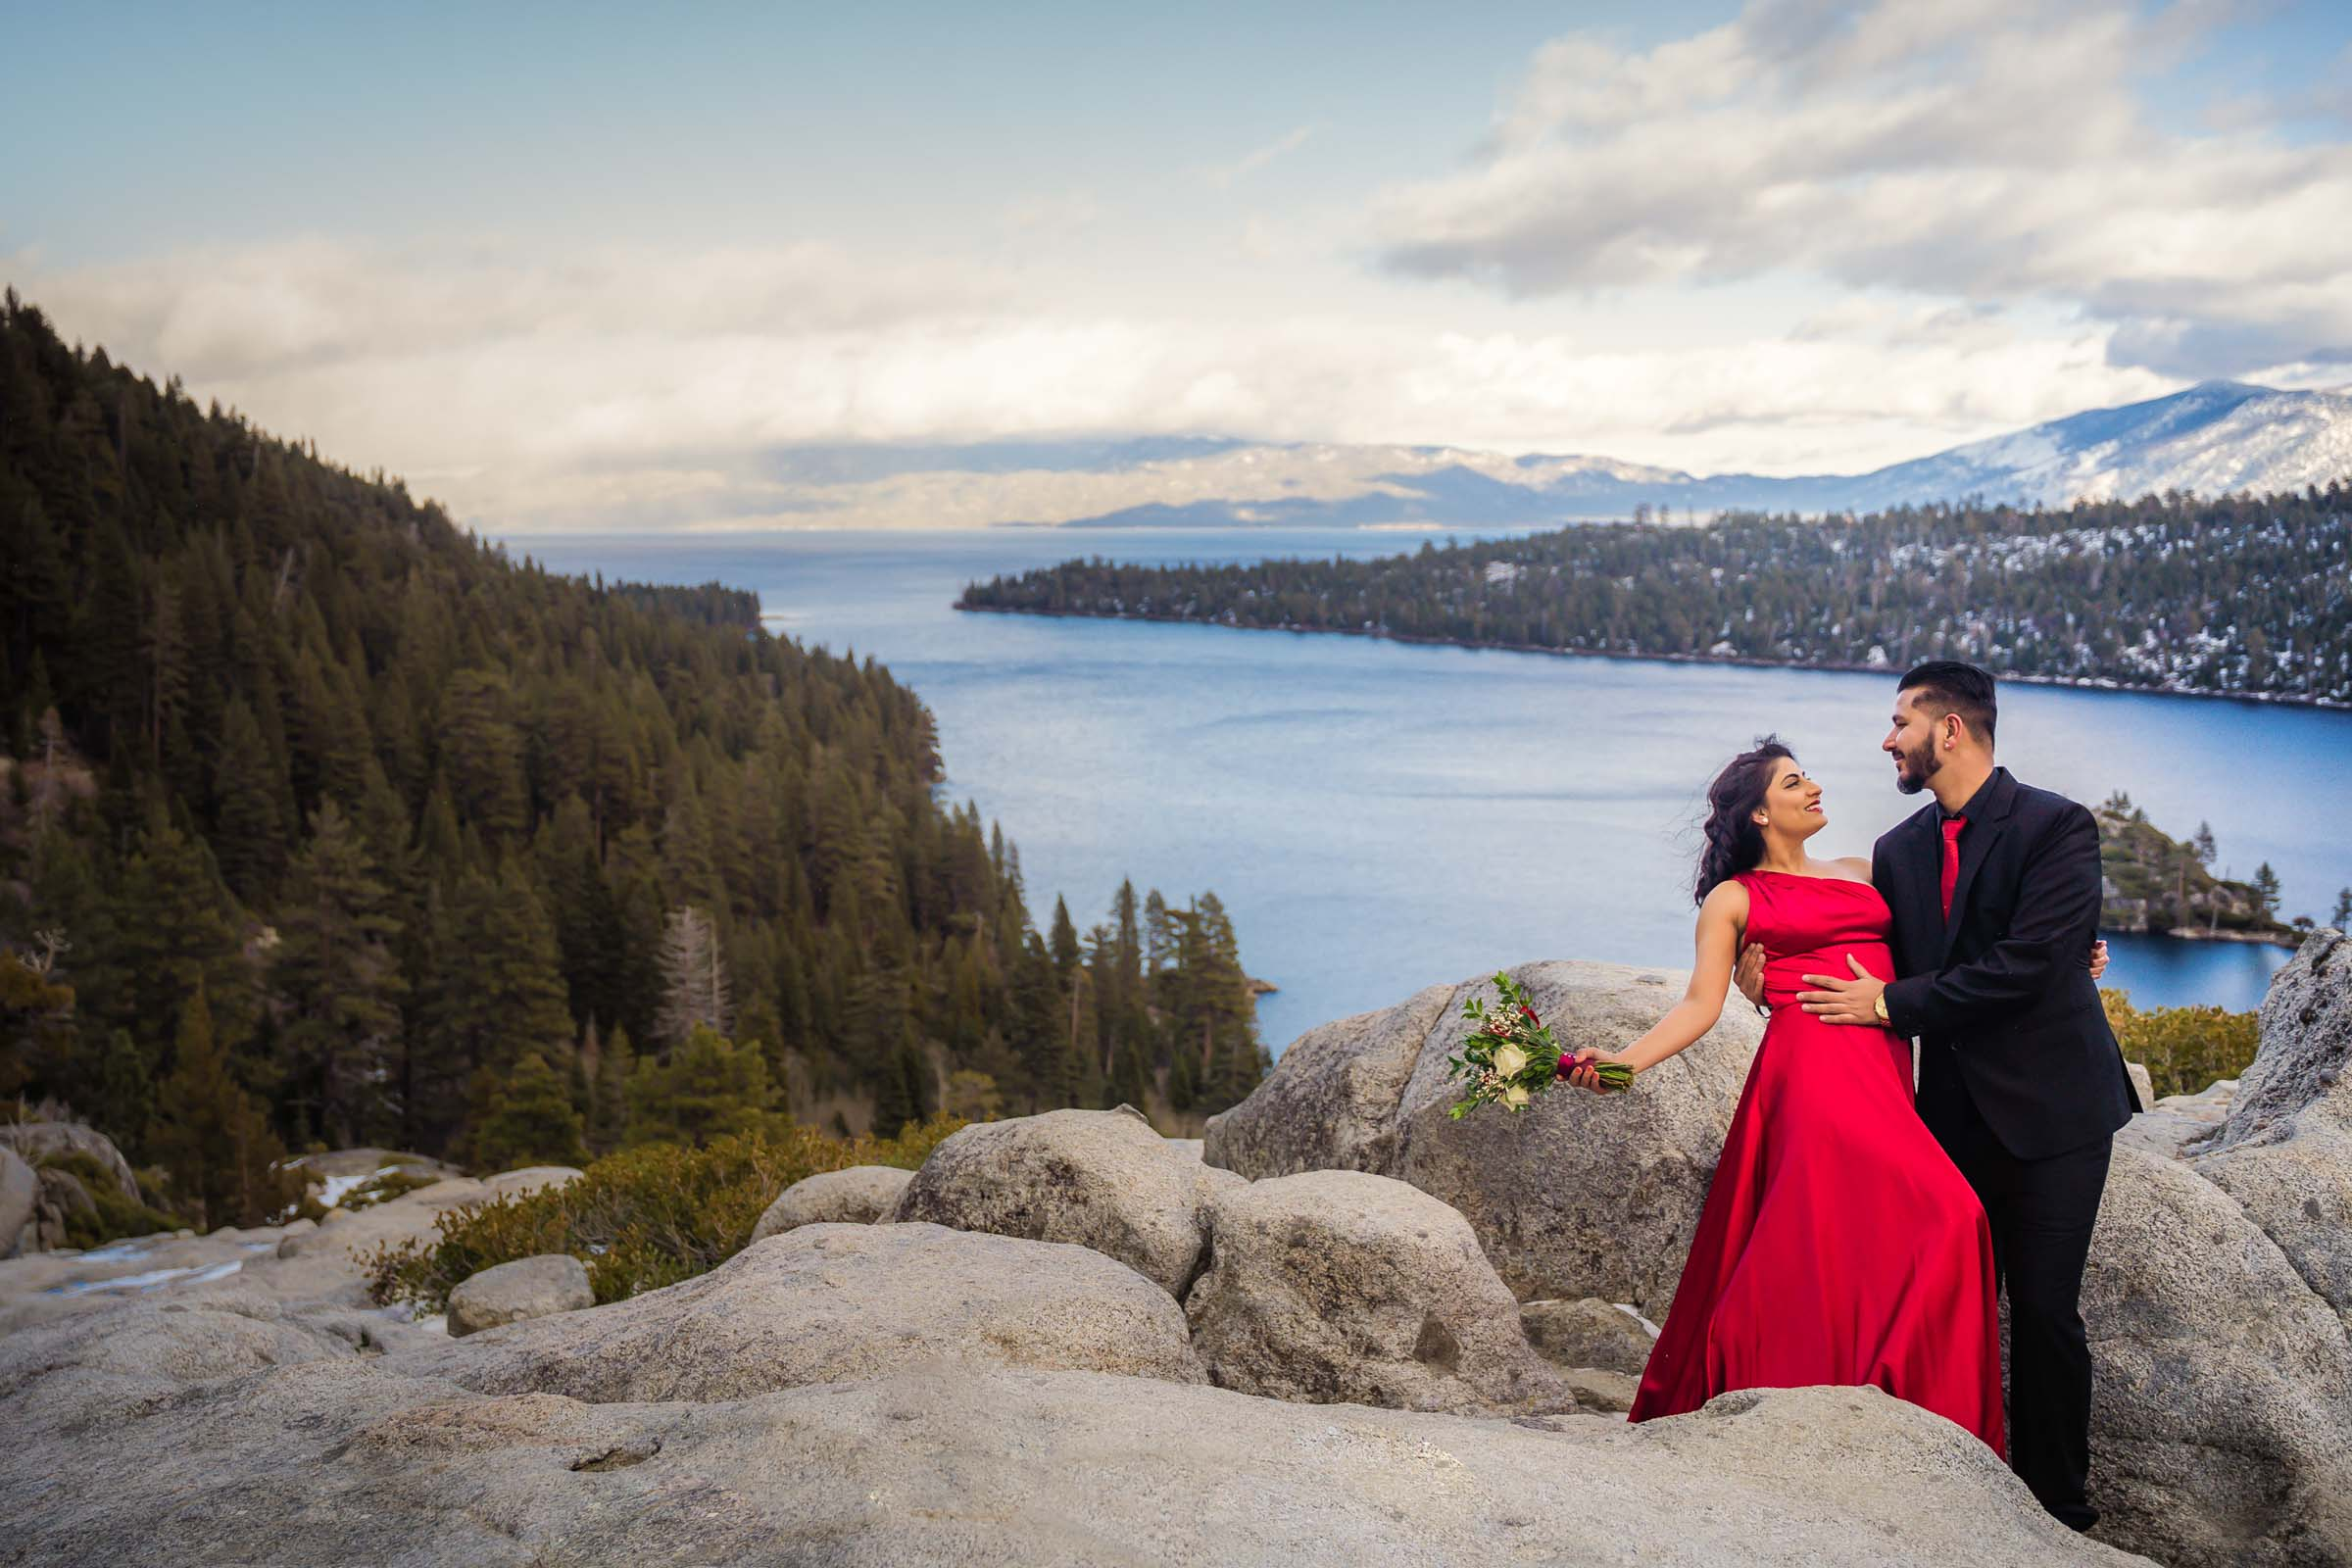 Lake Tahoe Elopement Packages wedding photography at Emerald Bay, South Lake Tahoe California